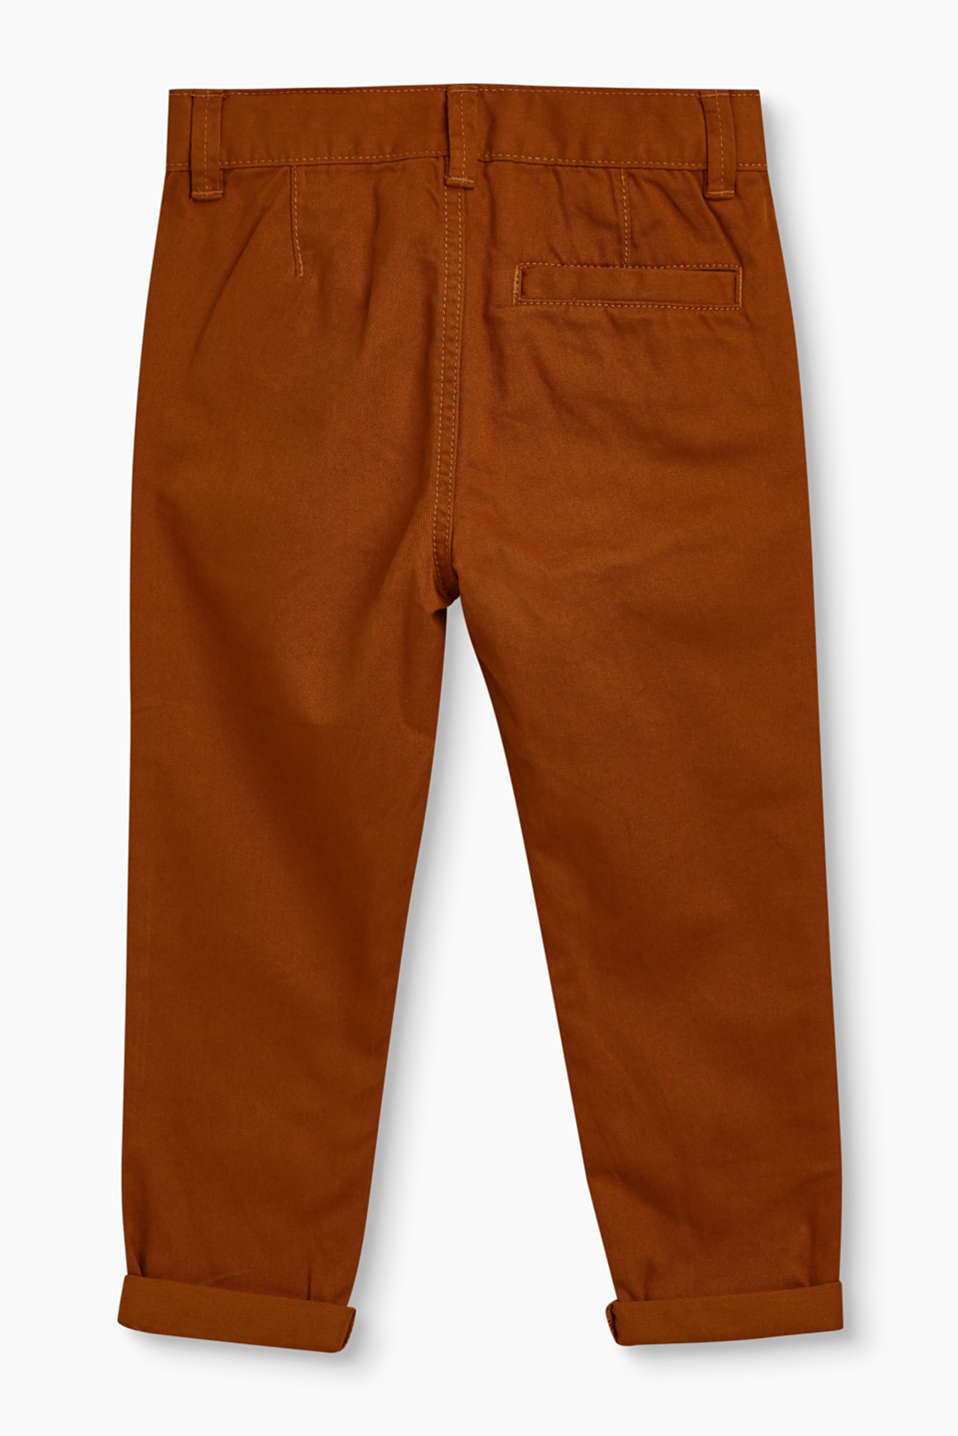 Chinos with adjustable waist, 100% cotton